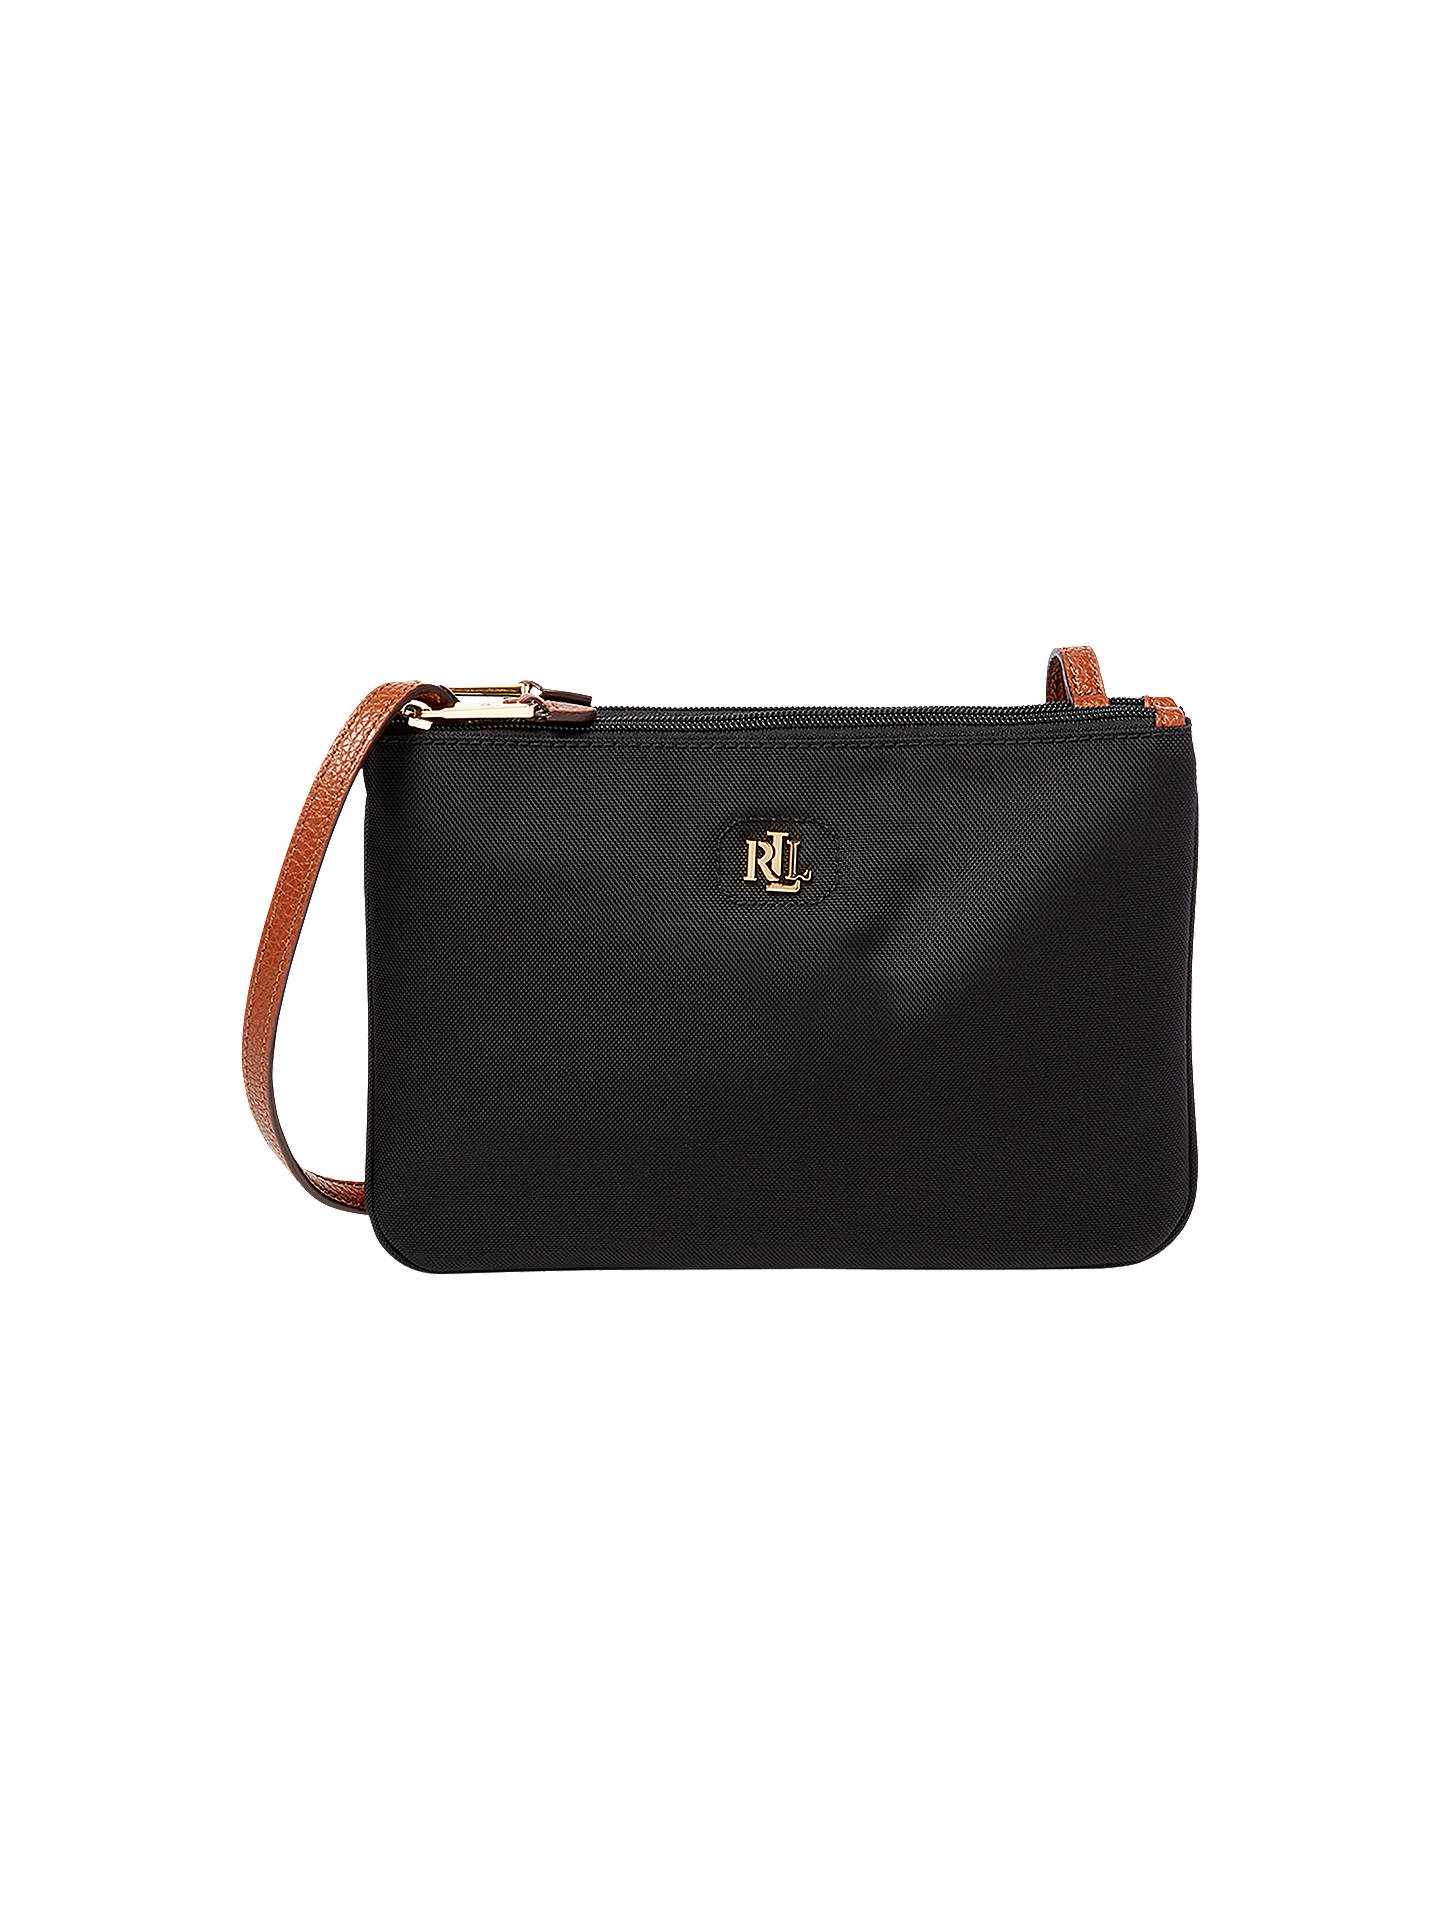 51270afa312 BuyLauren Ralph Lauren Tara Cross Body Bag, Black Online at johnlewis.com  ...